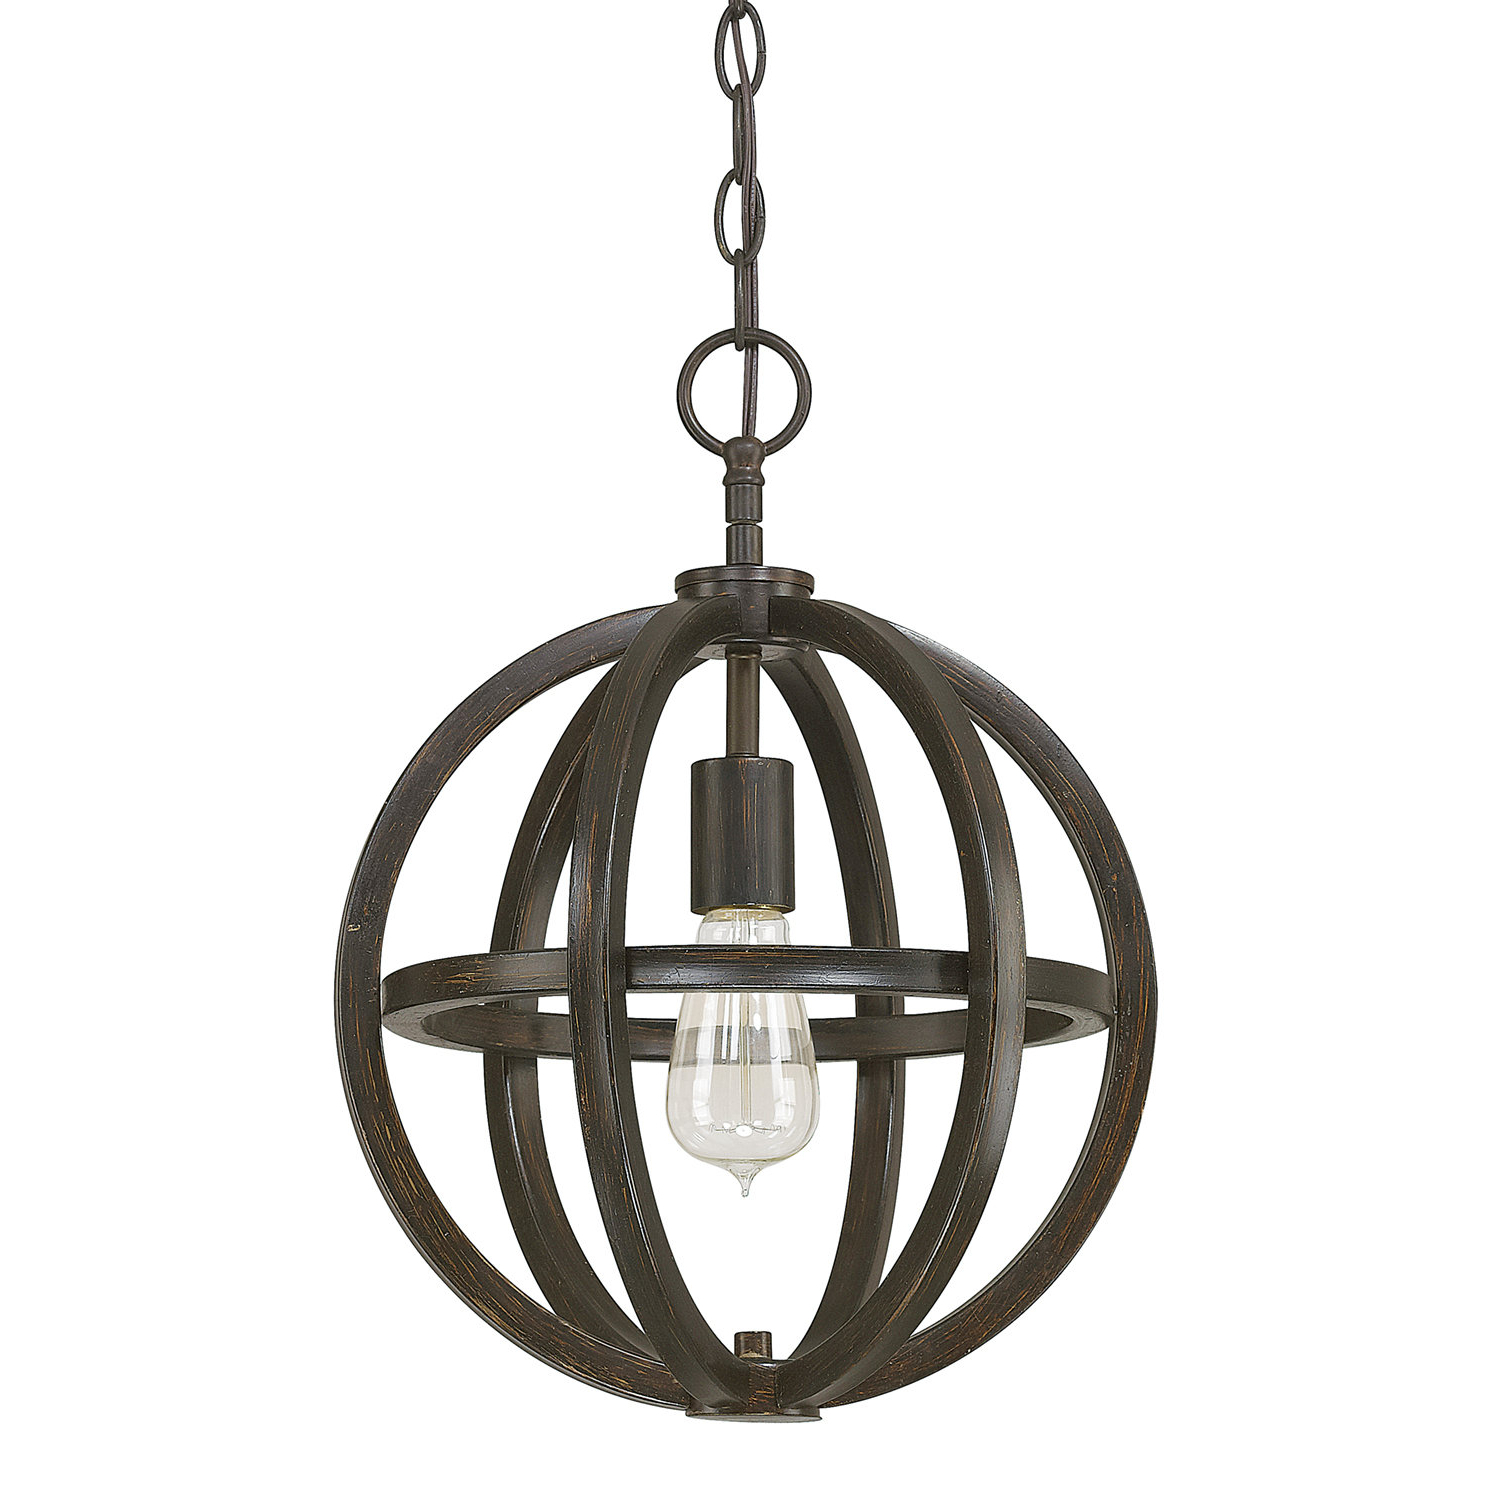 2019 Trent Austin Design Irwin 1 Light Single Globe Pendant Regarding Kilby 1 Light Pendants (Gallery 13 of 20)